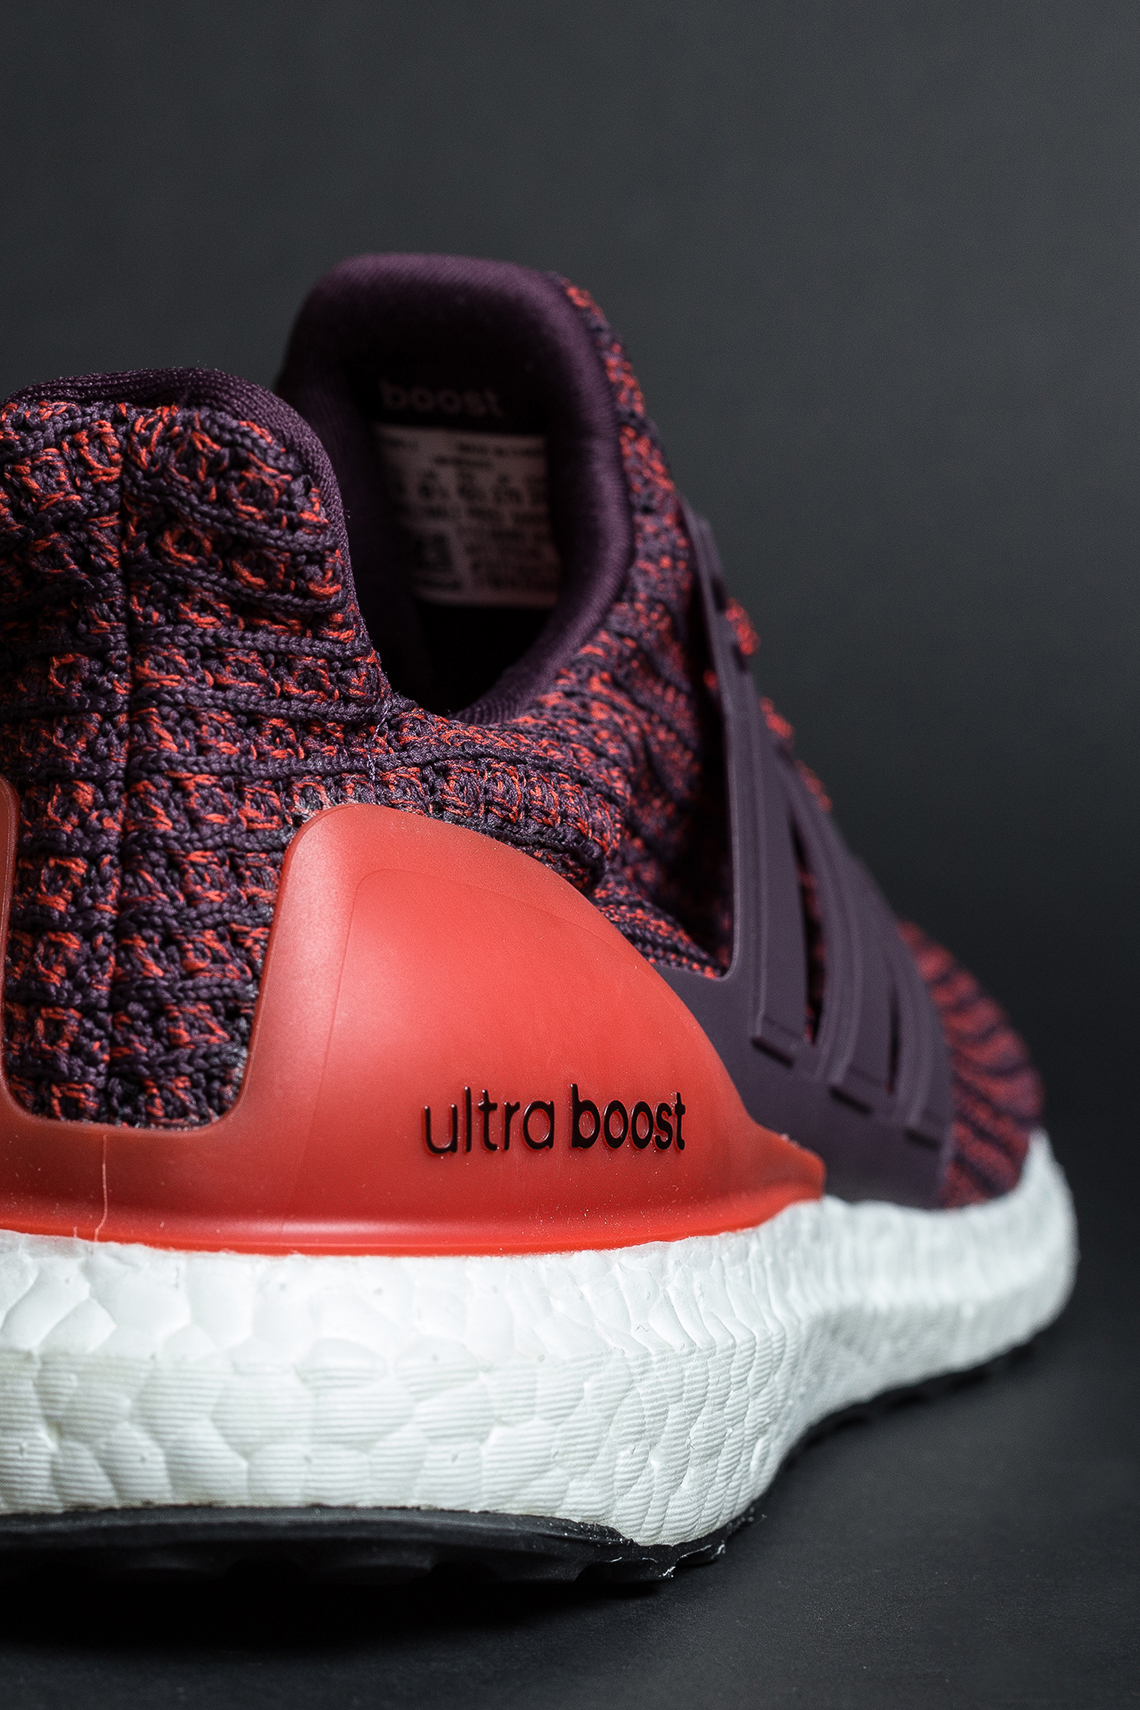 The adidas UltraBOOST 4.0 Gives a Nod to Chinese New Year The